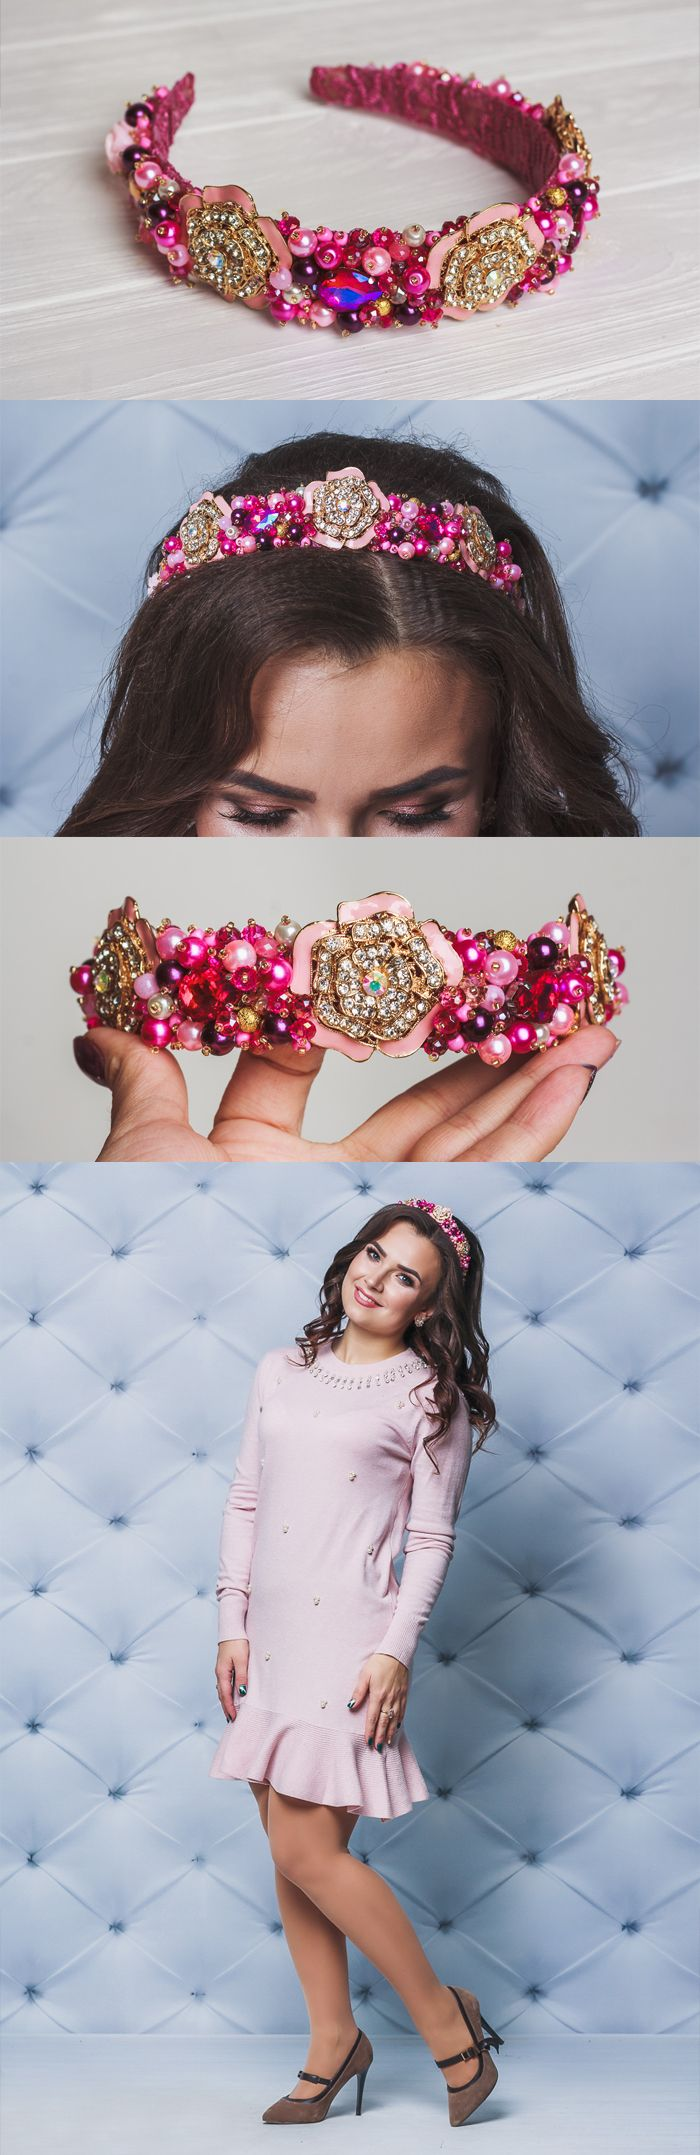 Pink dolce headband Wedding crystal crown Pageant tiara Floral barbie prom Rhinestone headband Gold bridal crystal Boho wedding crown tiara